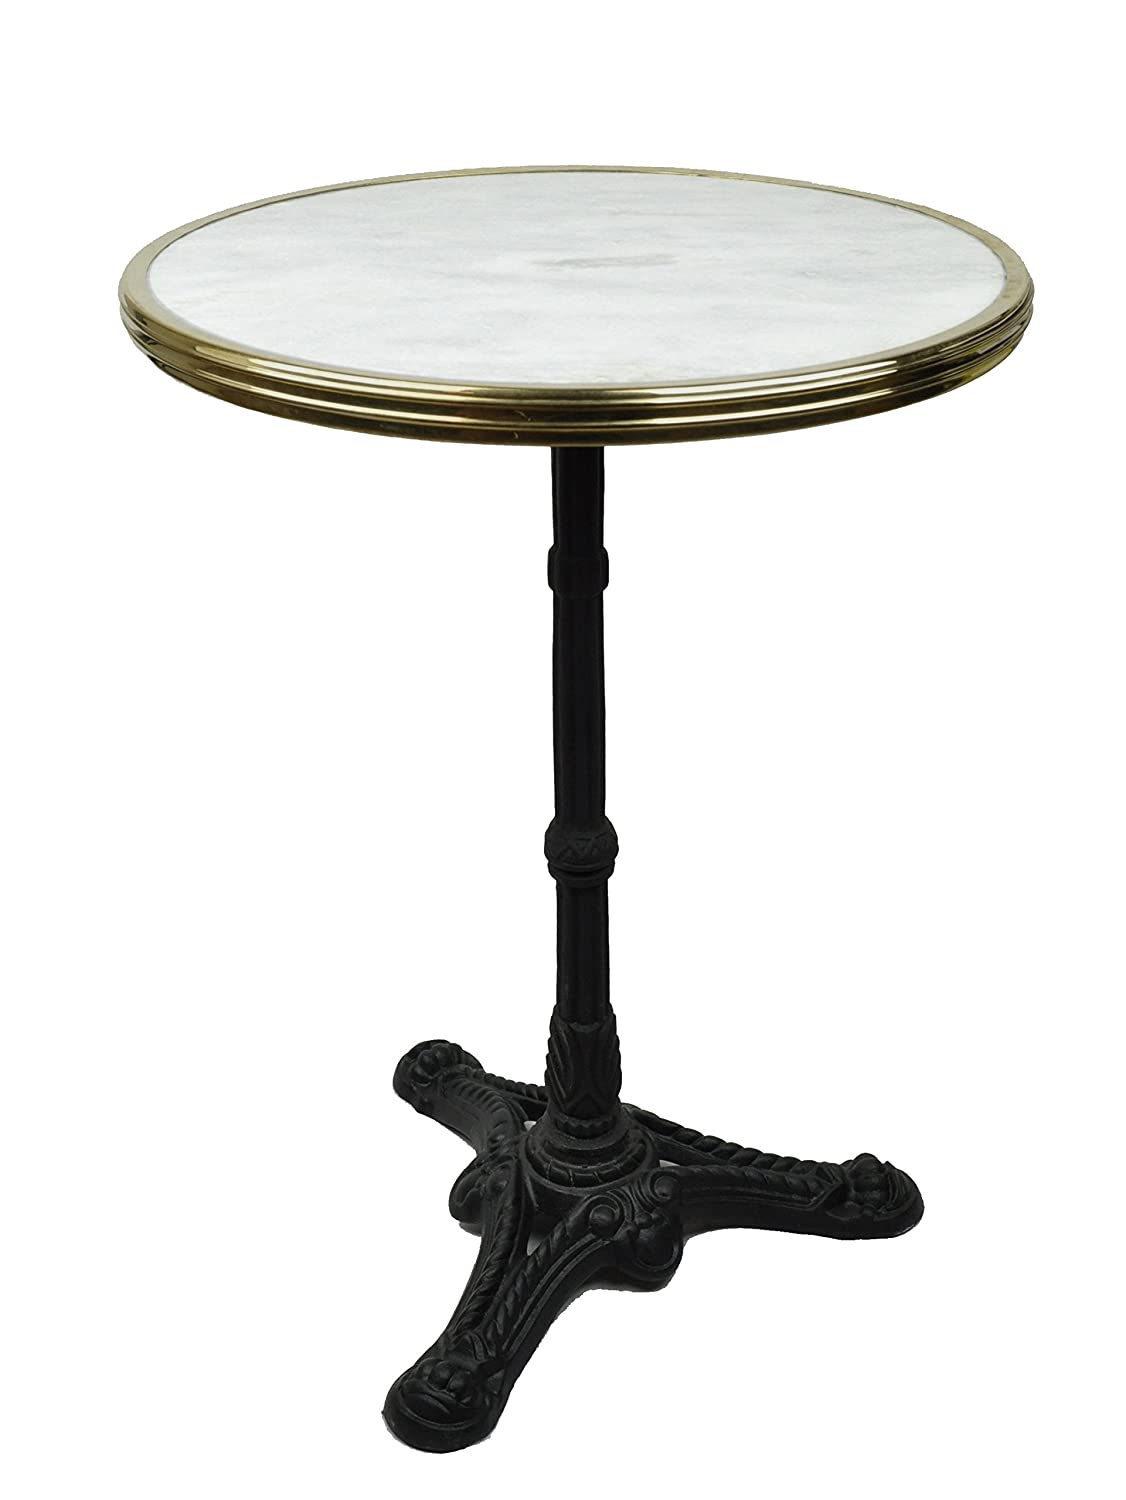 French bistro table with marble top and iron base